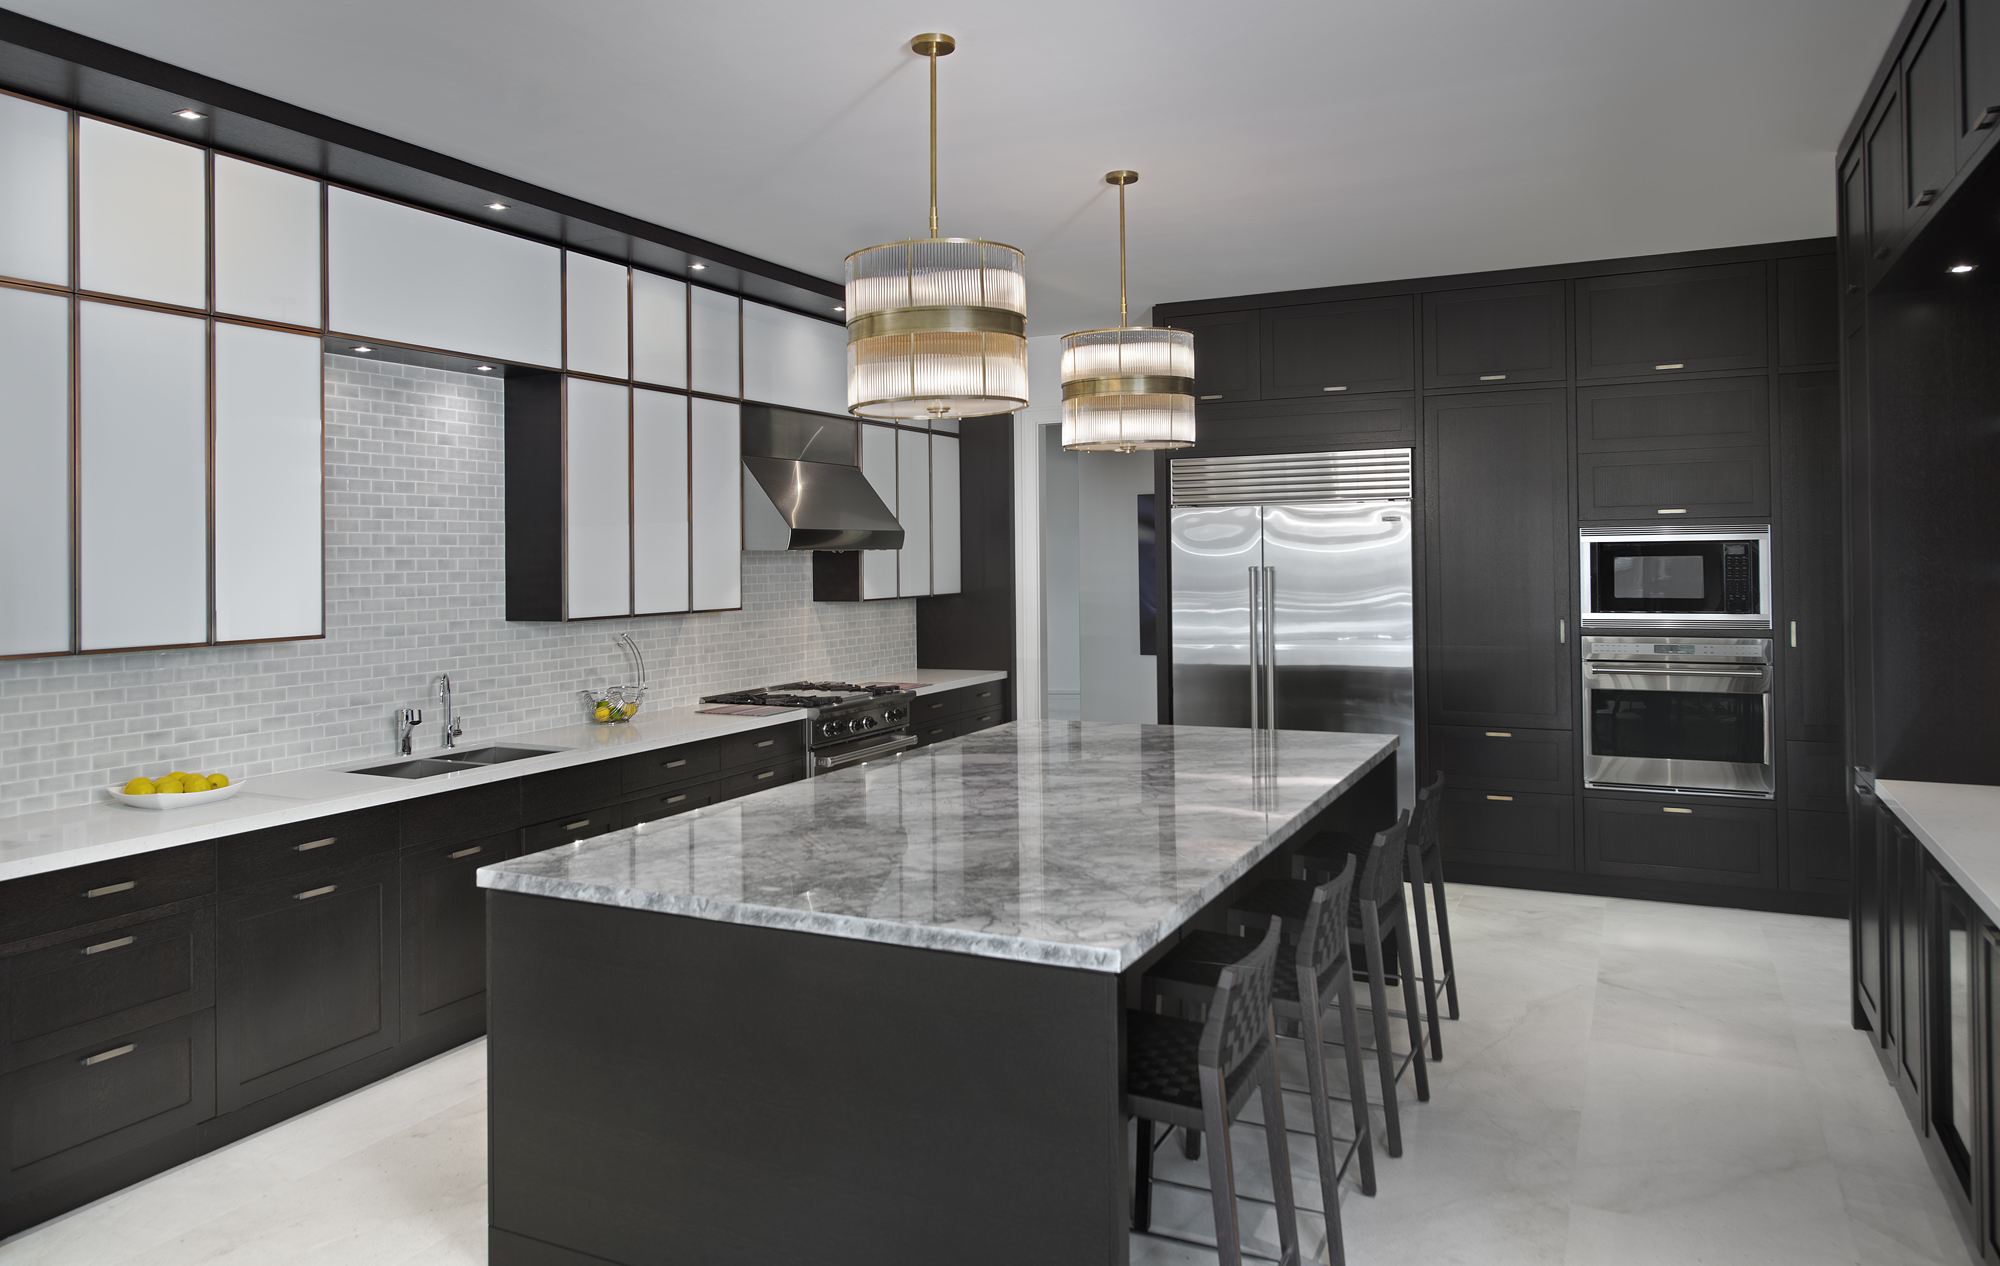 Impressive Black Marble Kitchen S Of Ideas S White Counter Designs Pictures Acnn Decor